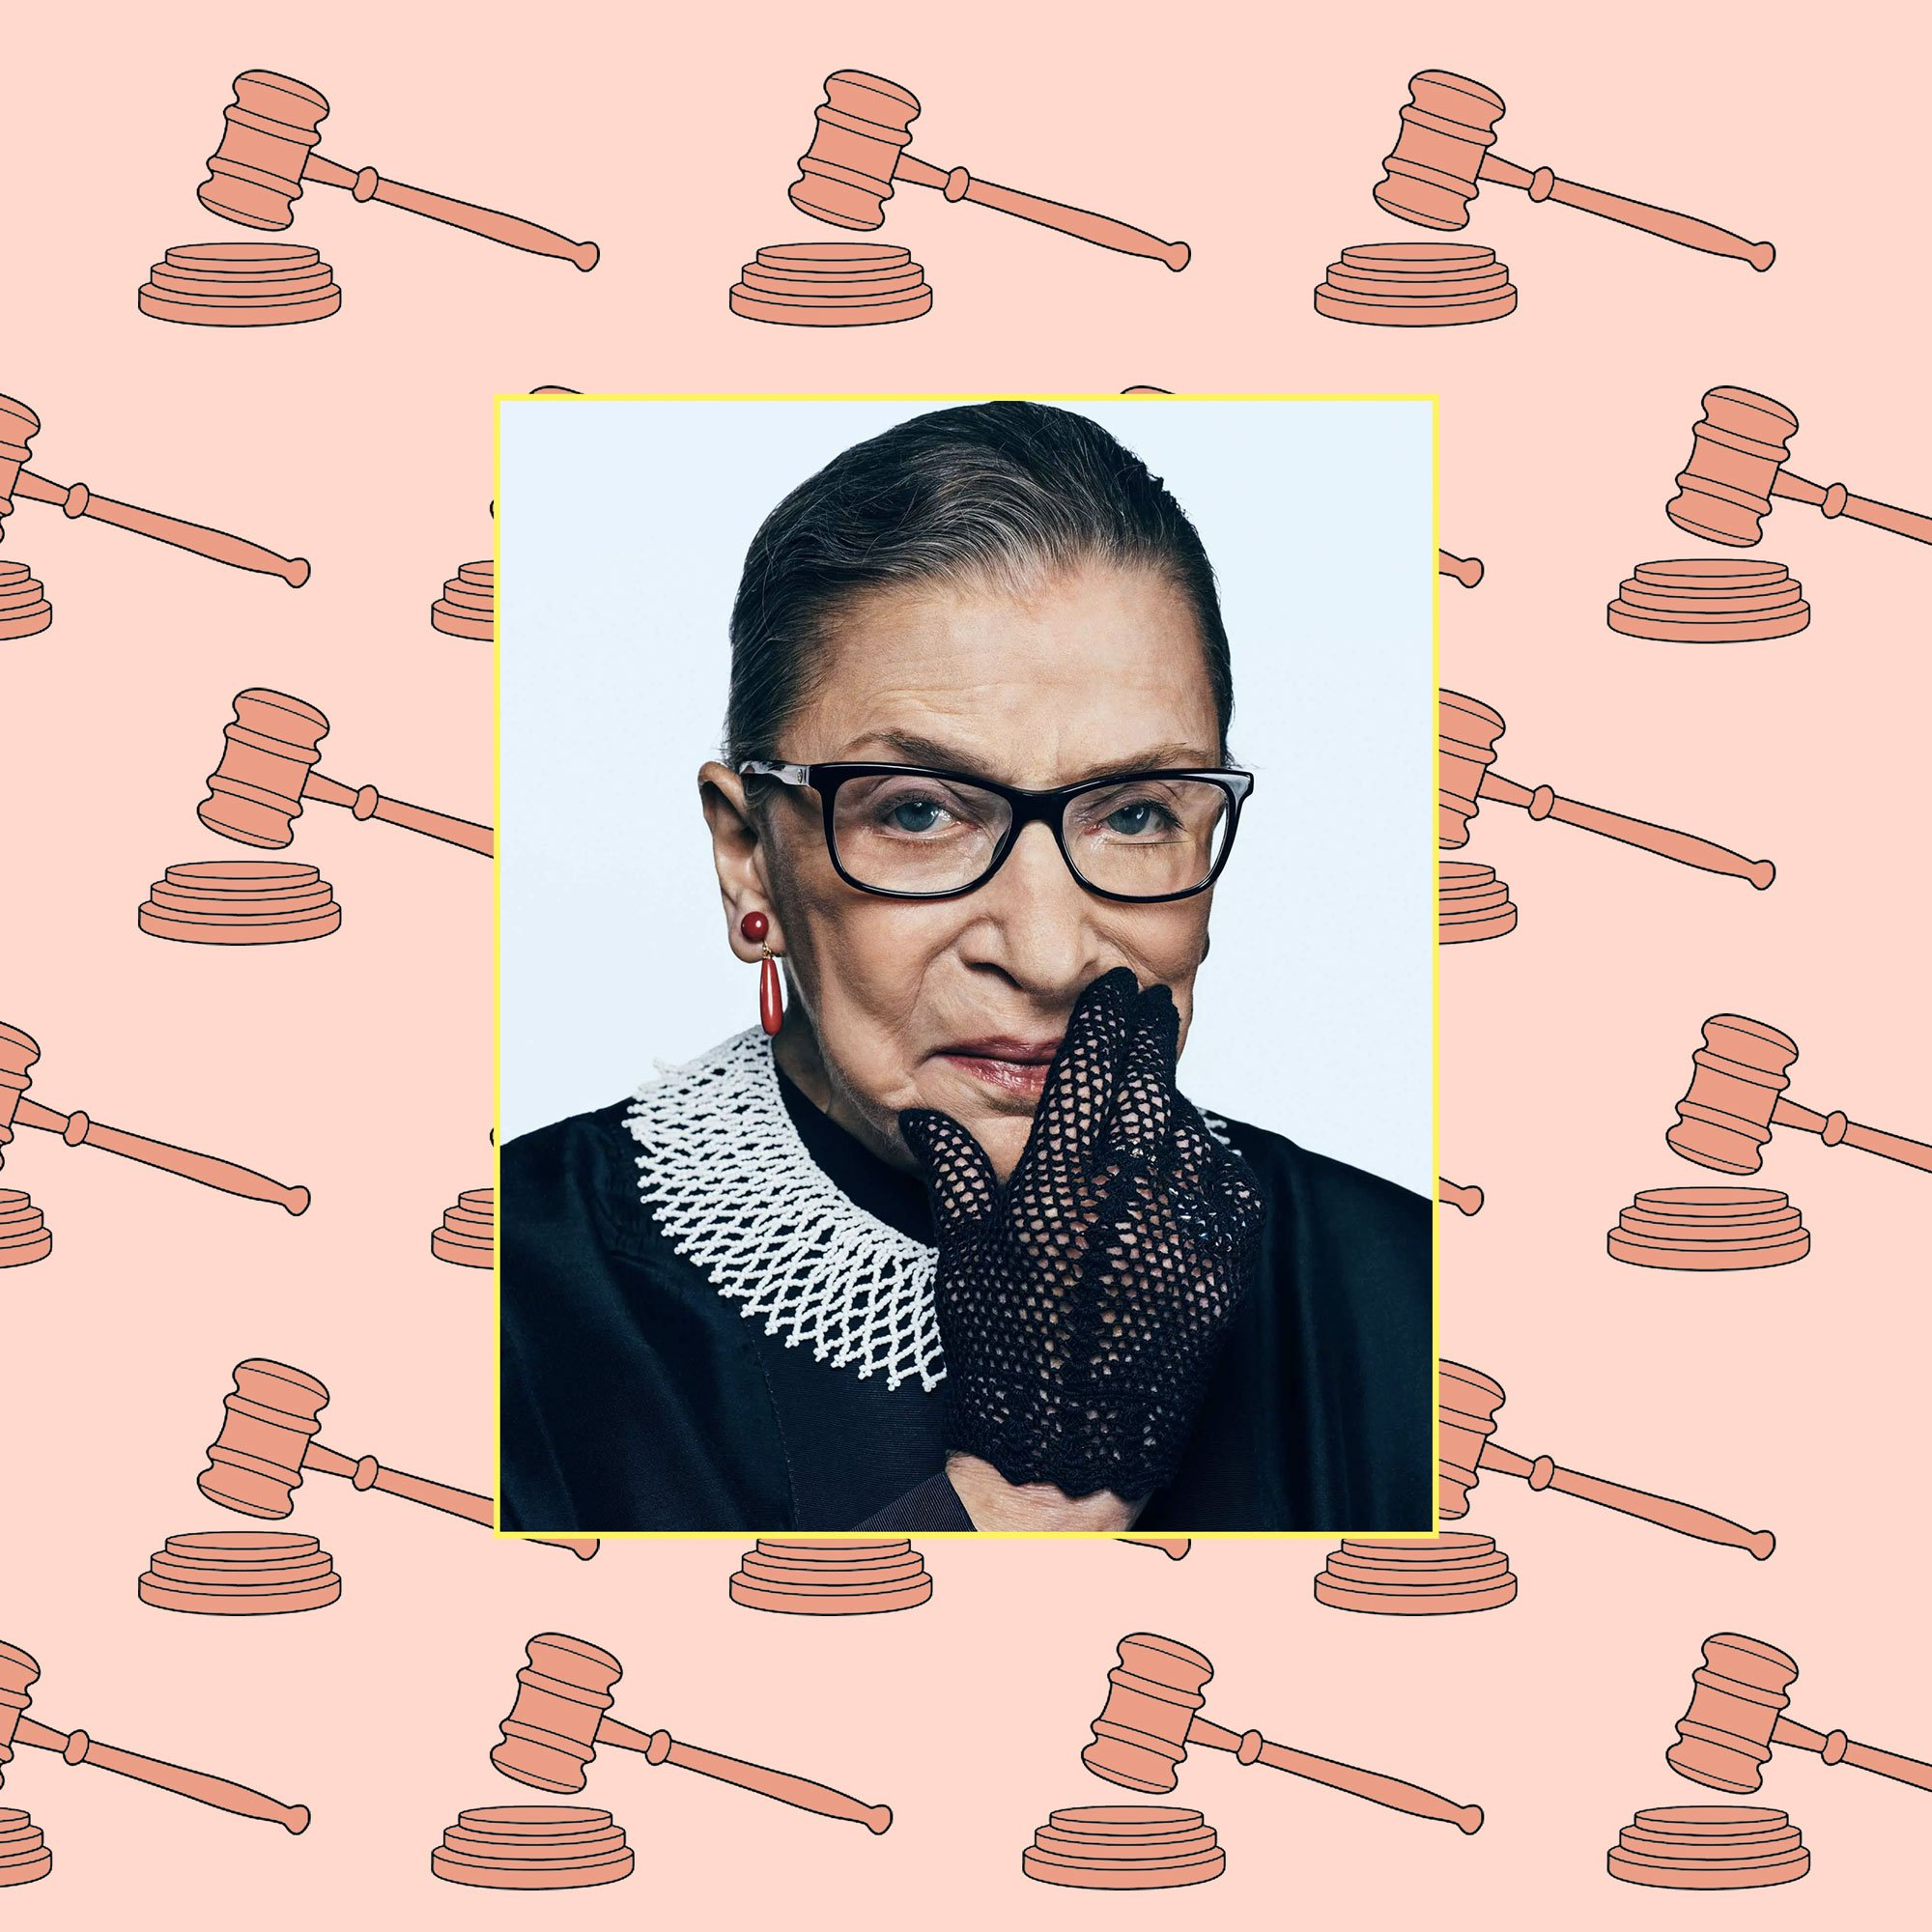 Happy birthday to this Goddess of Justice, Ruth Bader Ginsburg!! 85 years young, boo boo!